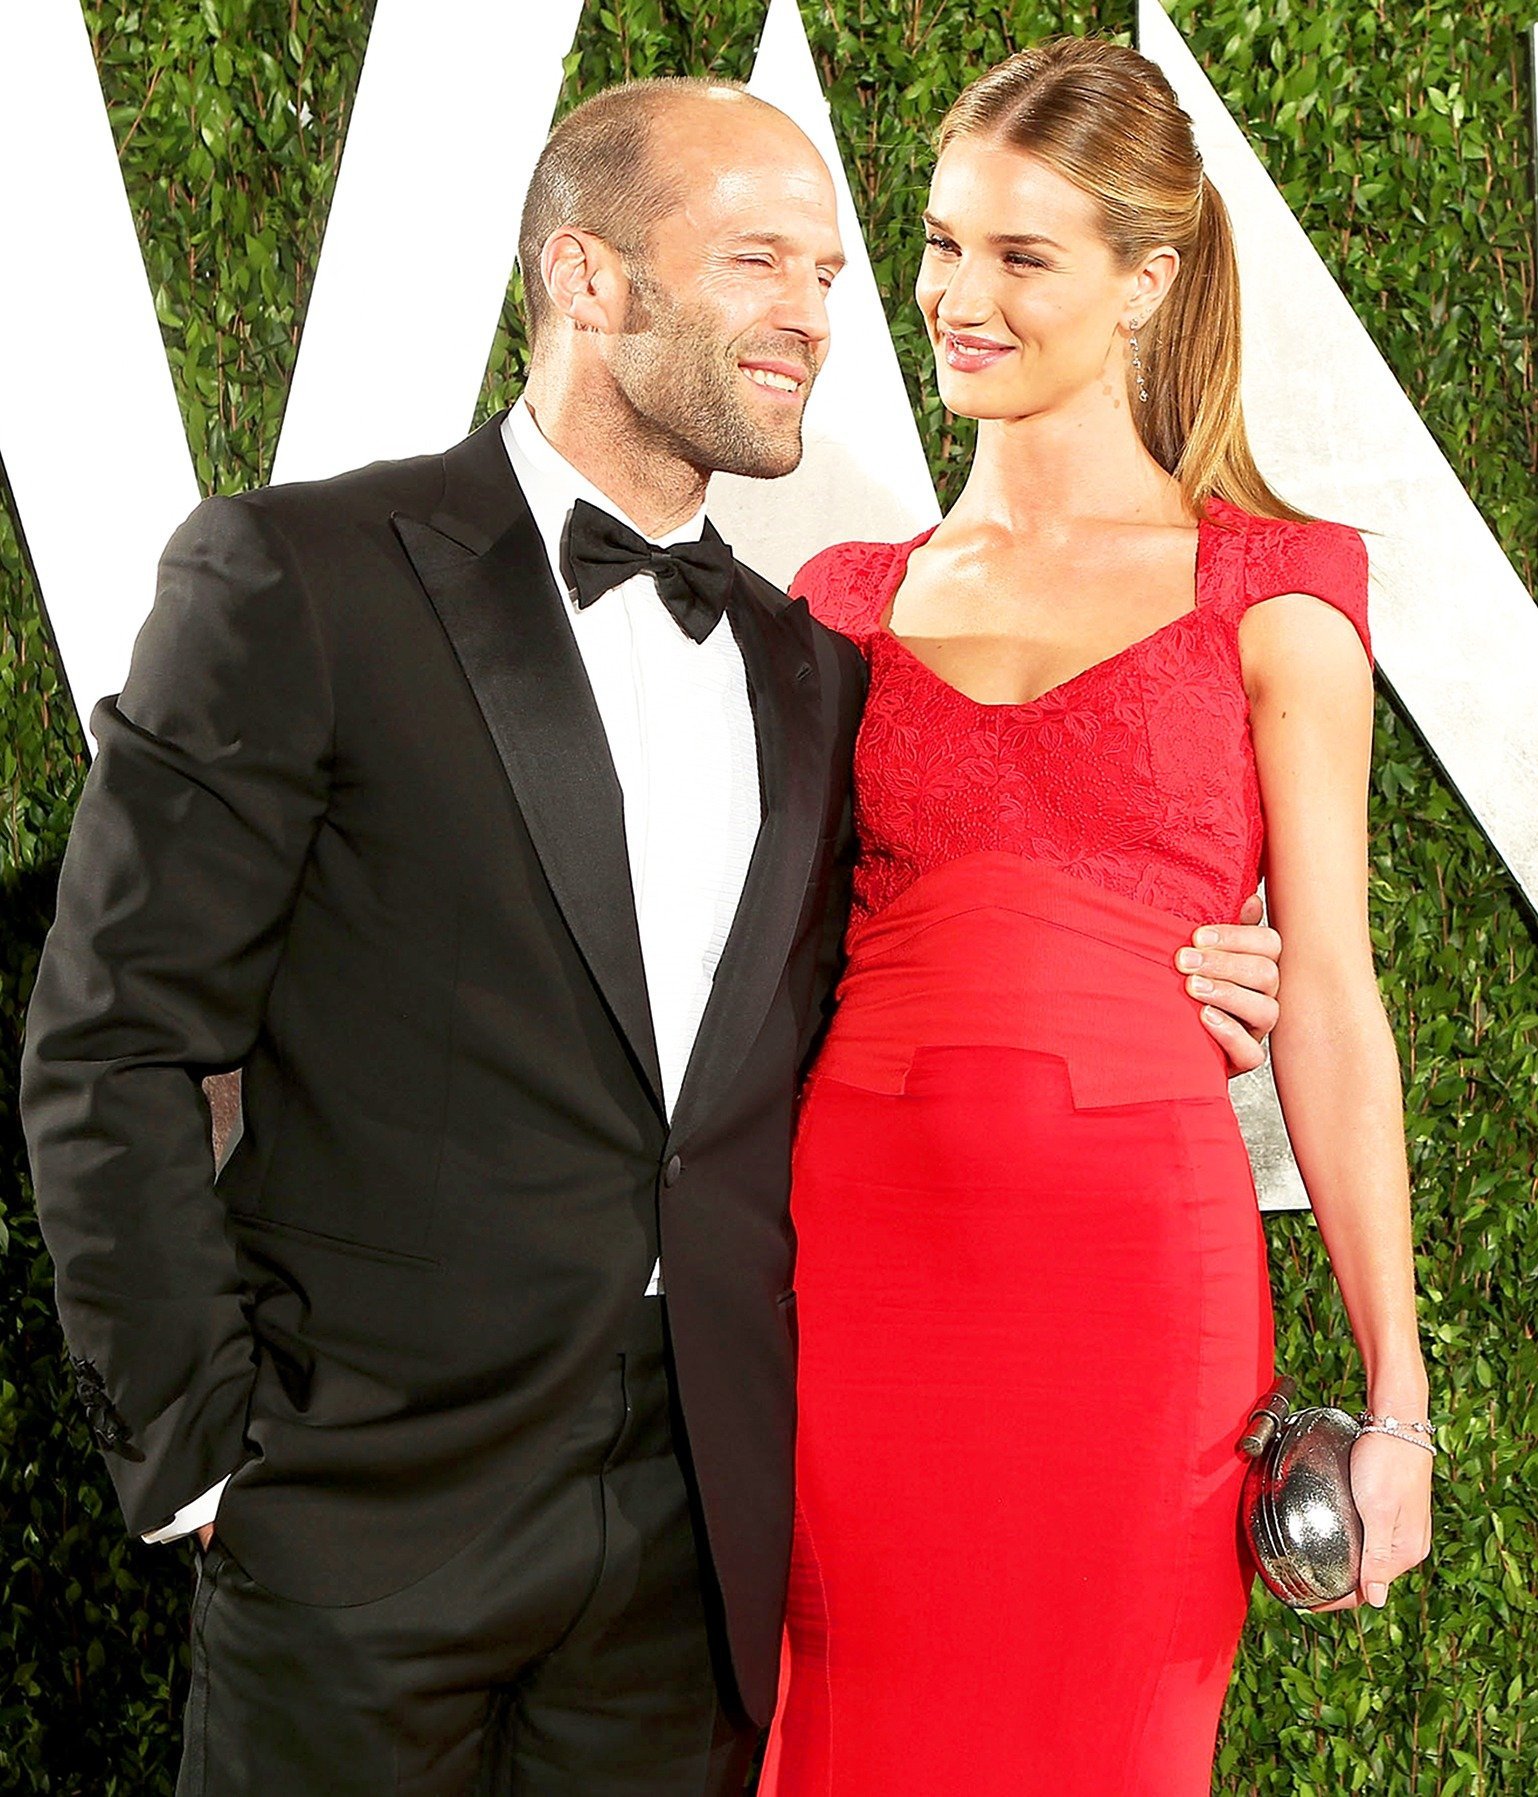 2 rosie 25 Facts That Will Make You Love Jason Statham Even More Than You Already Do